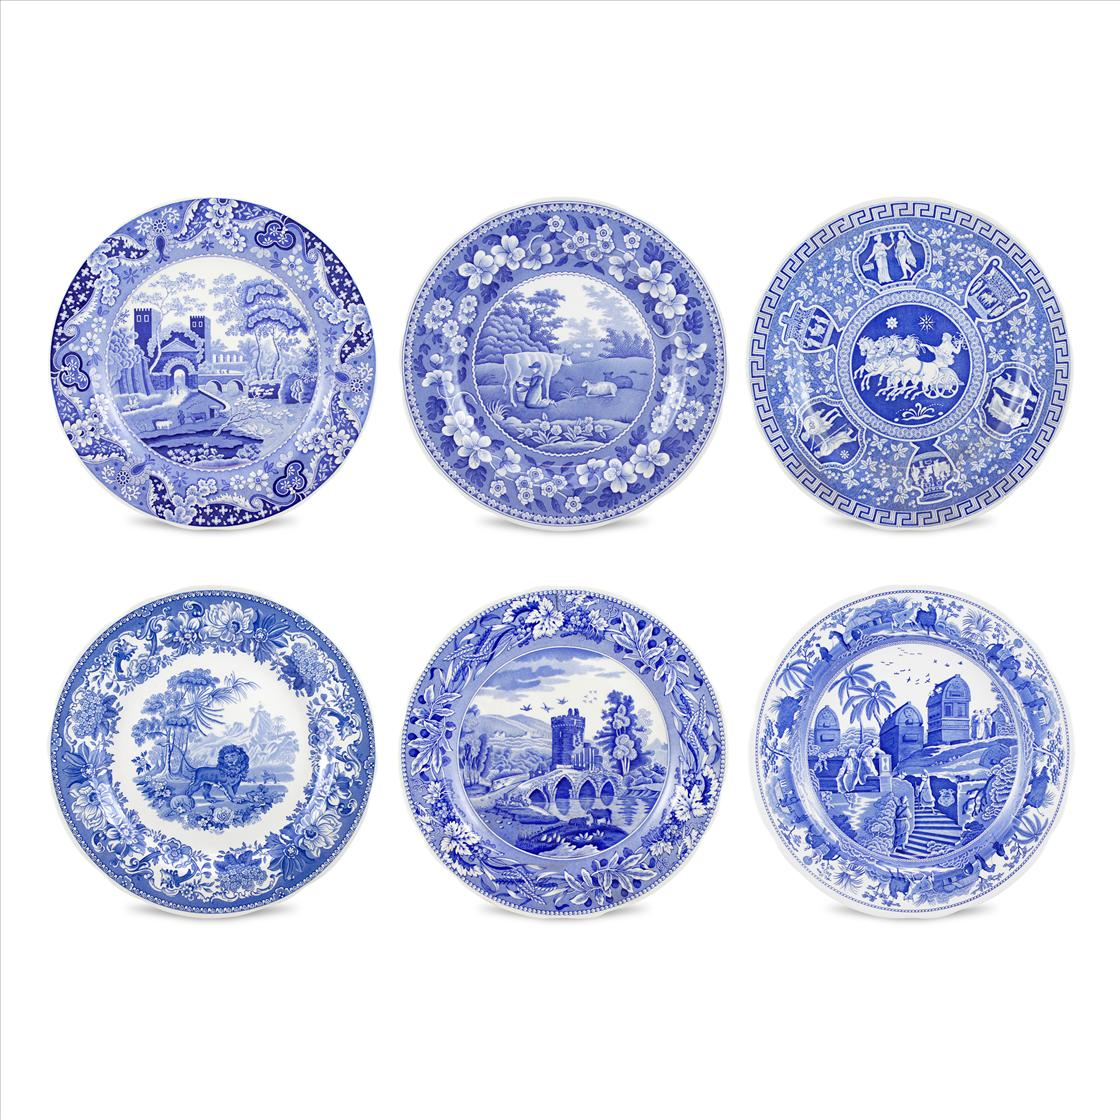 Spode Blue Room Set of 6 Traditions Plates image number 0